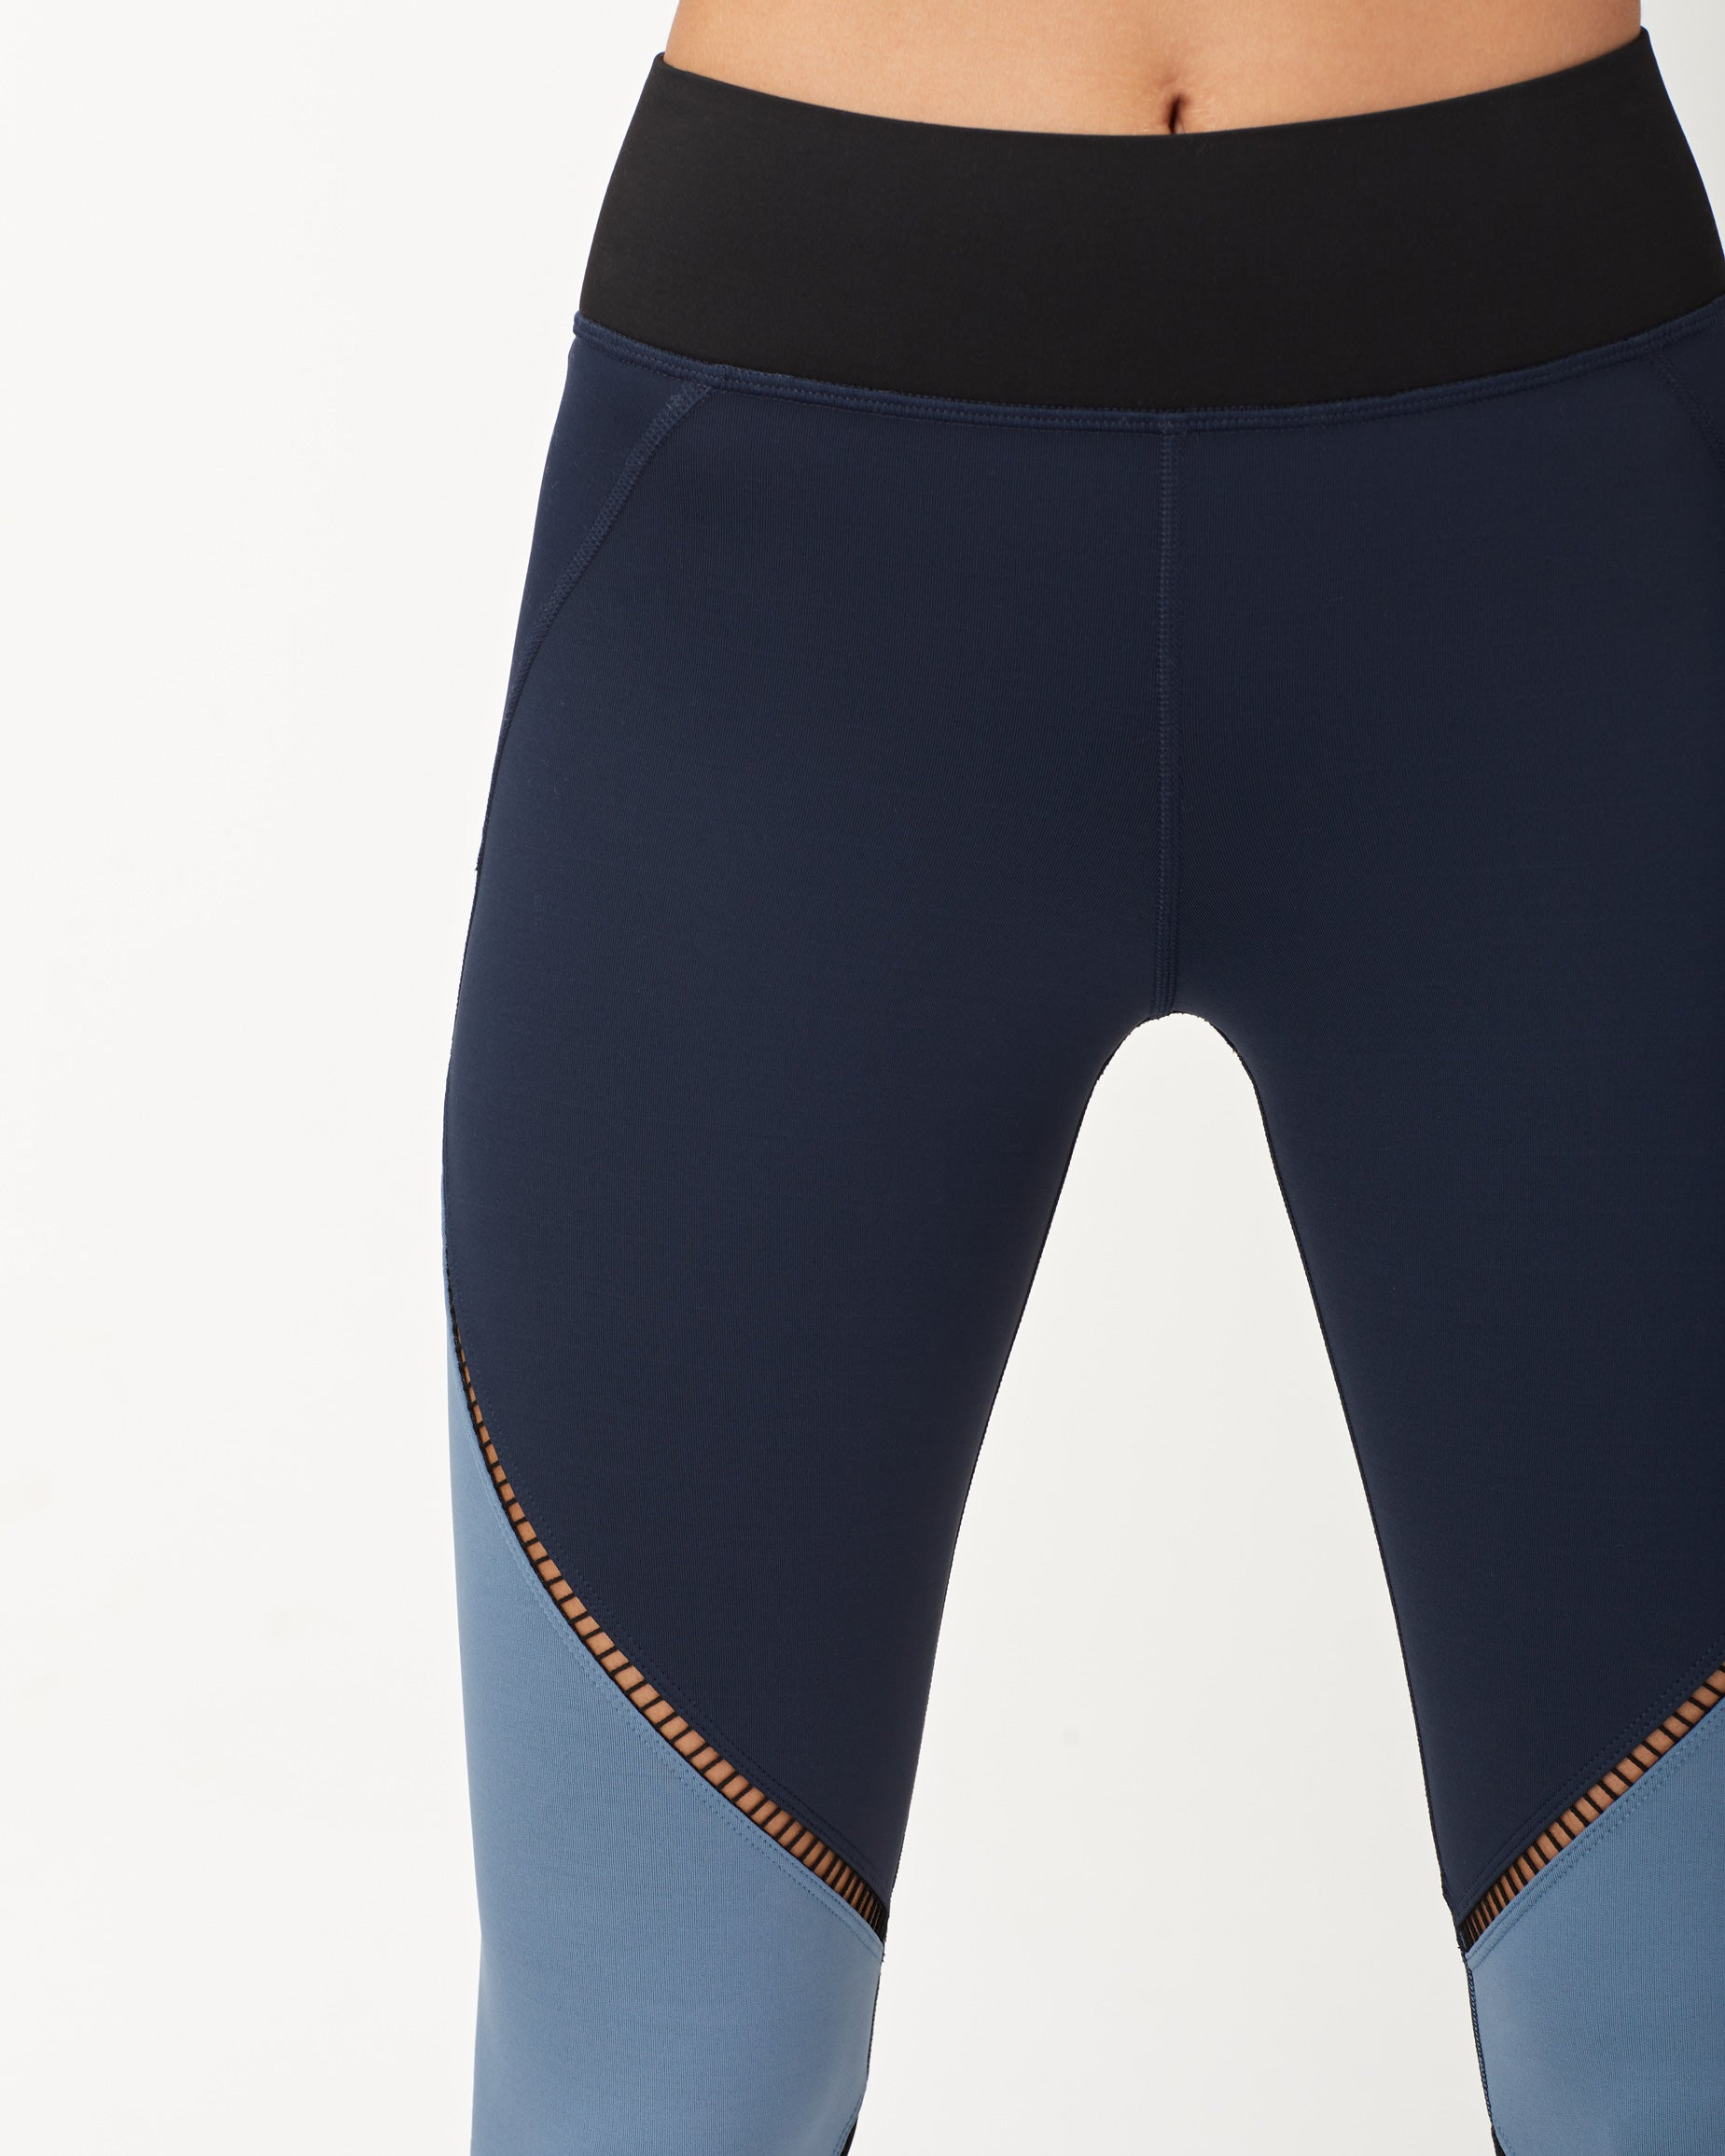 axial-legging-deep-sea-navy-storm-blue